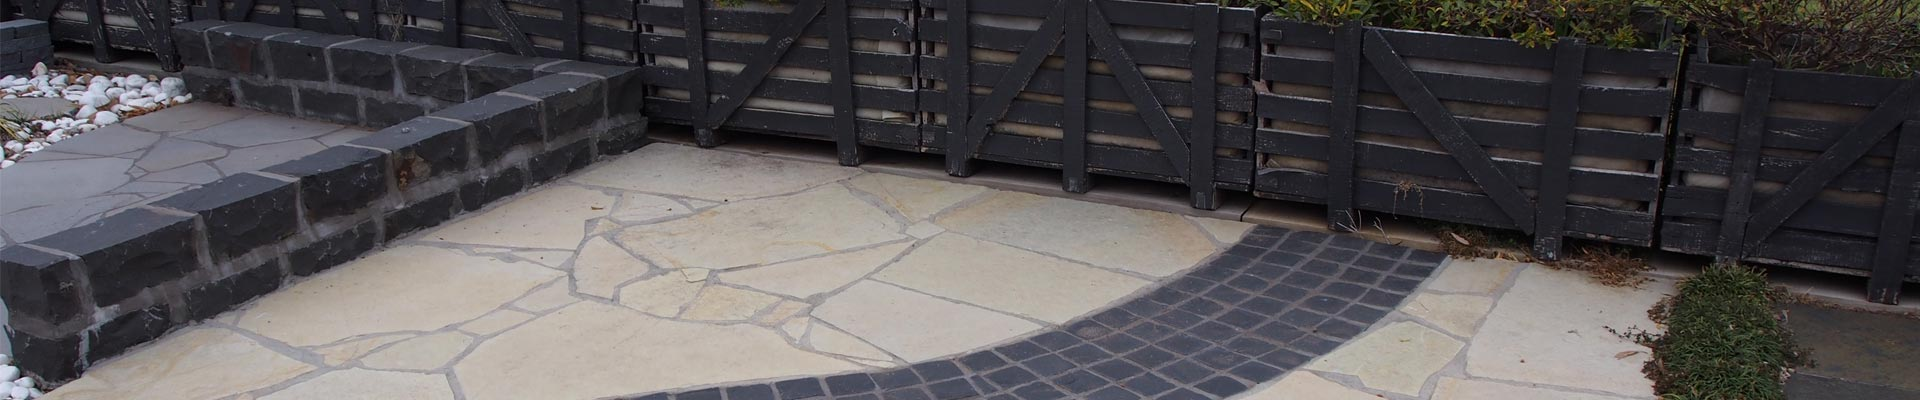 Advantages And Disadvantages Of Travertine Tiles In Melbourne